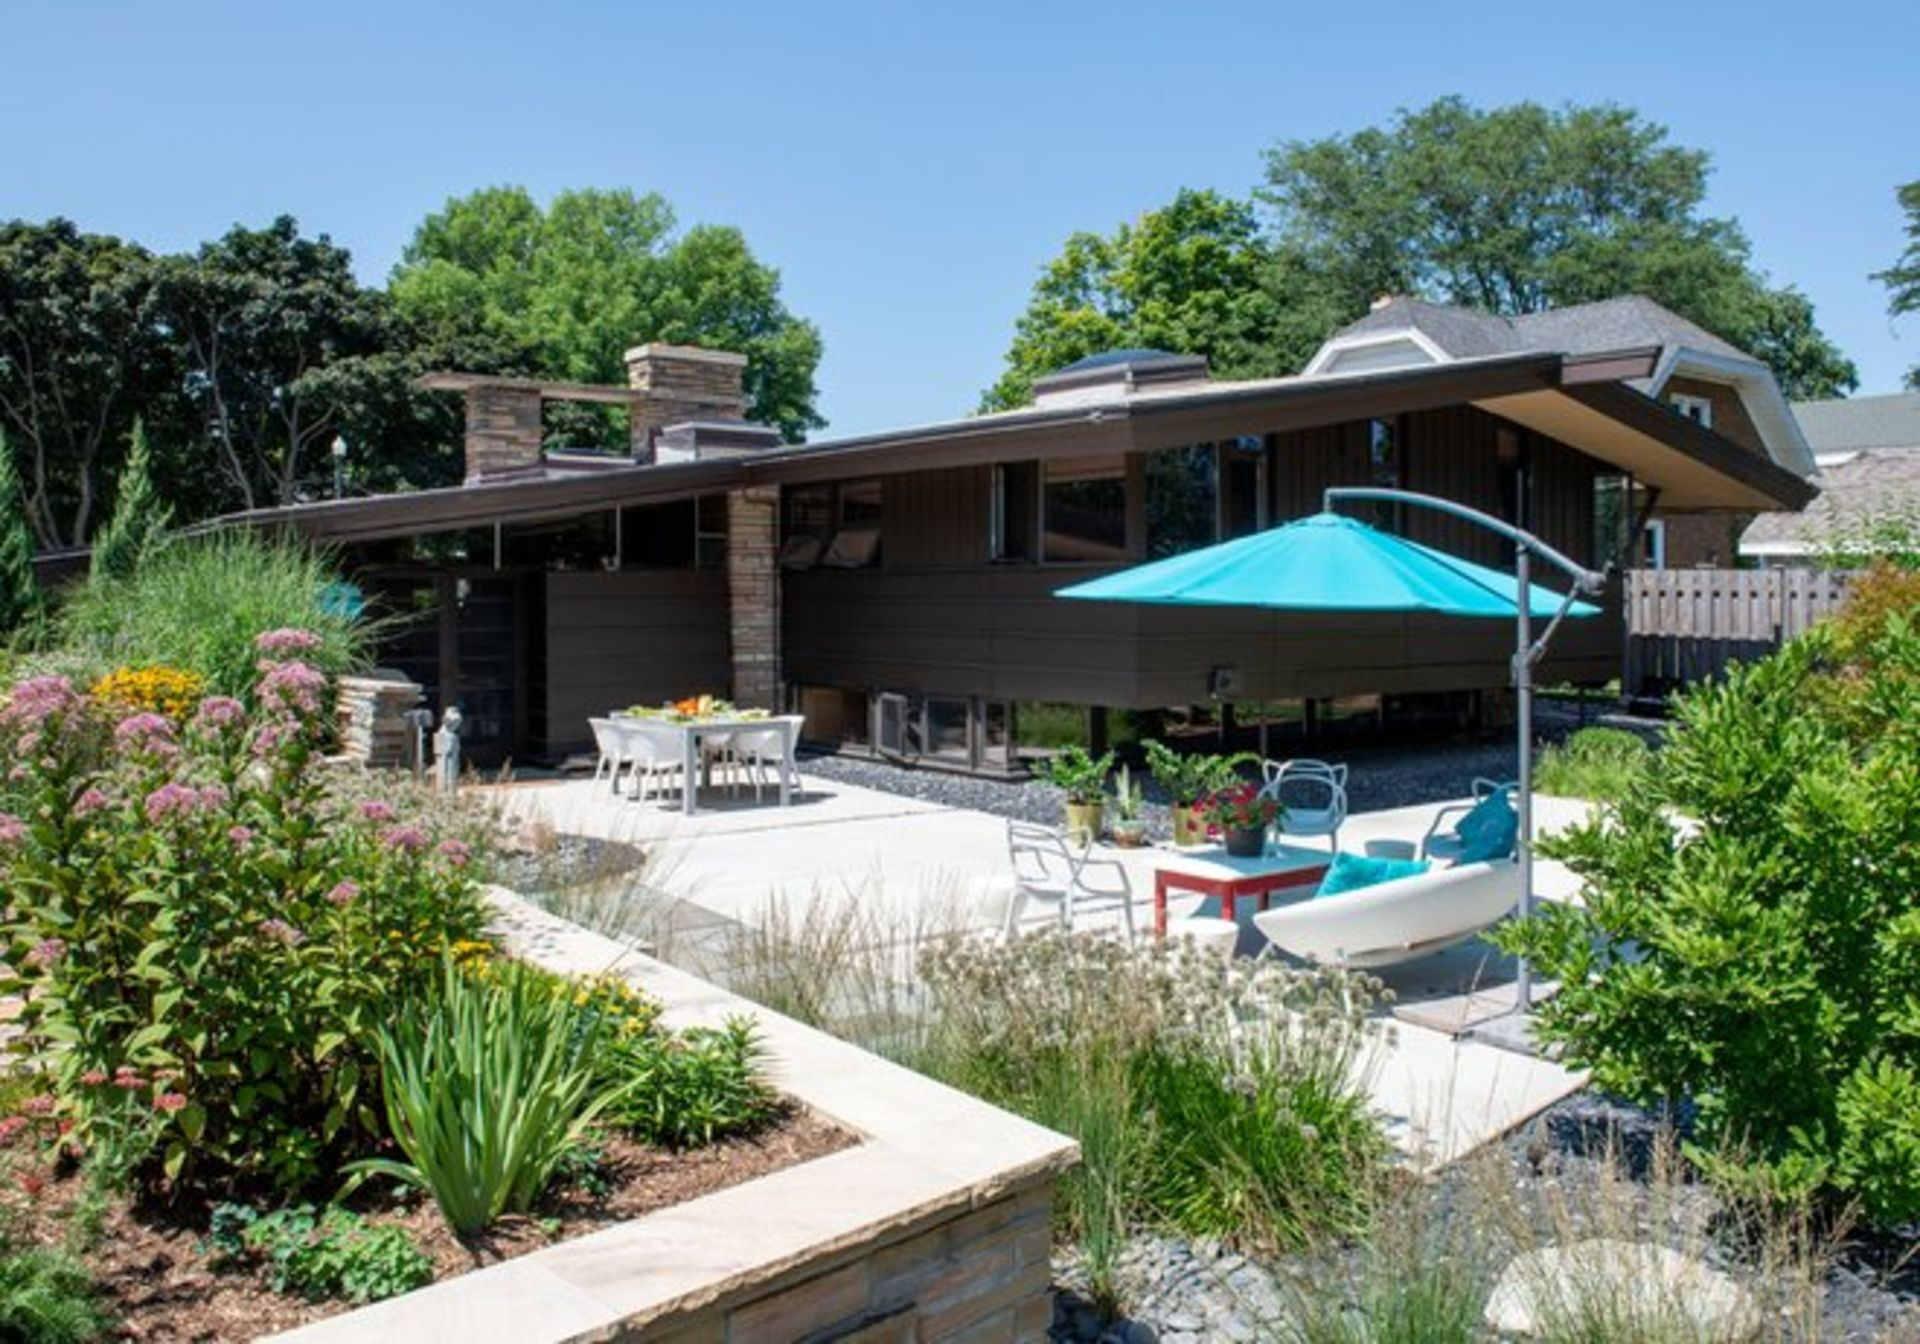 Wisconsin Landscape Stays True to Home's Midcentury Design